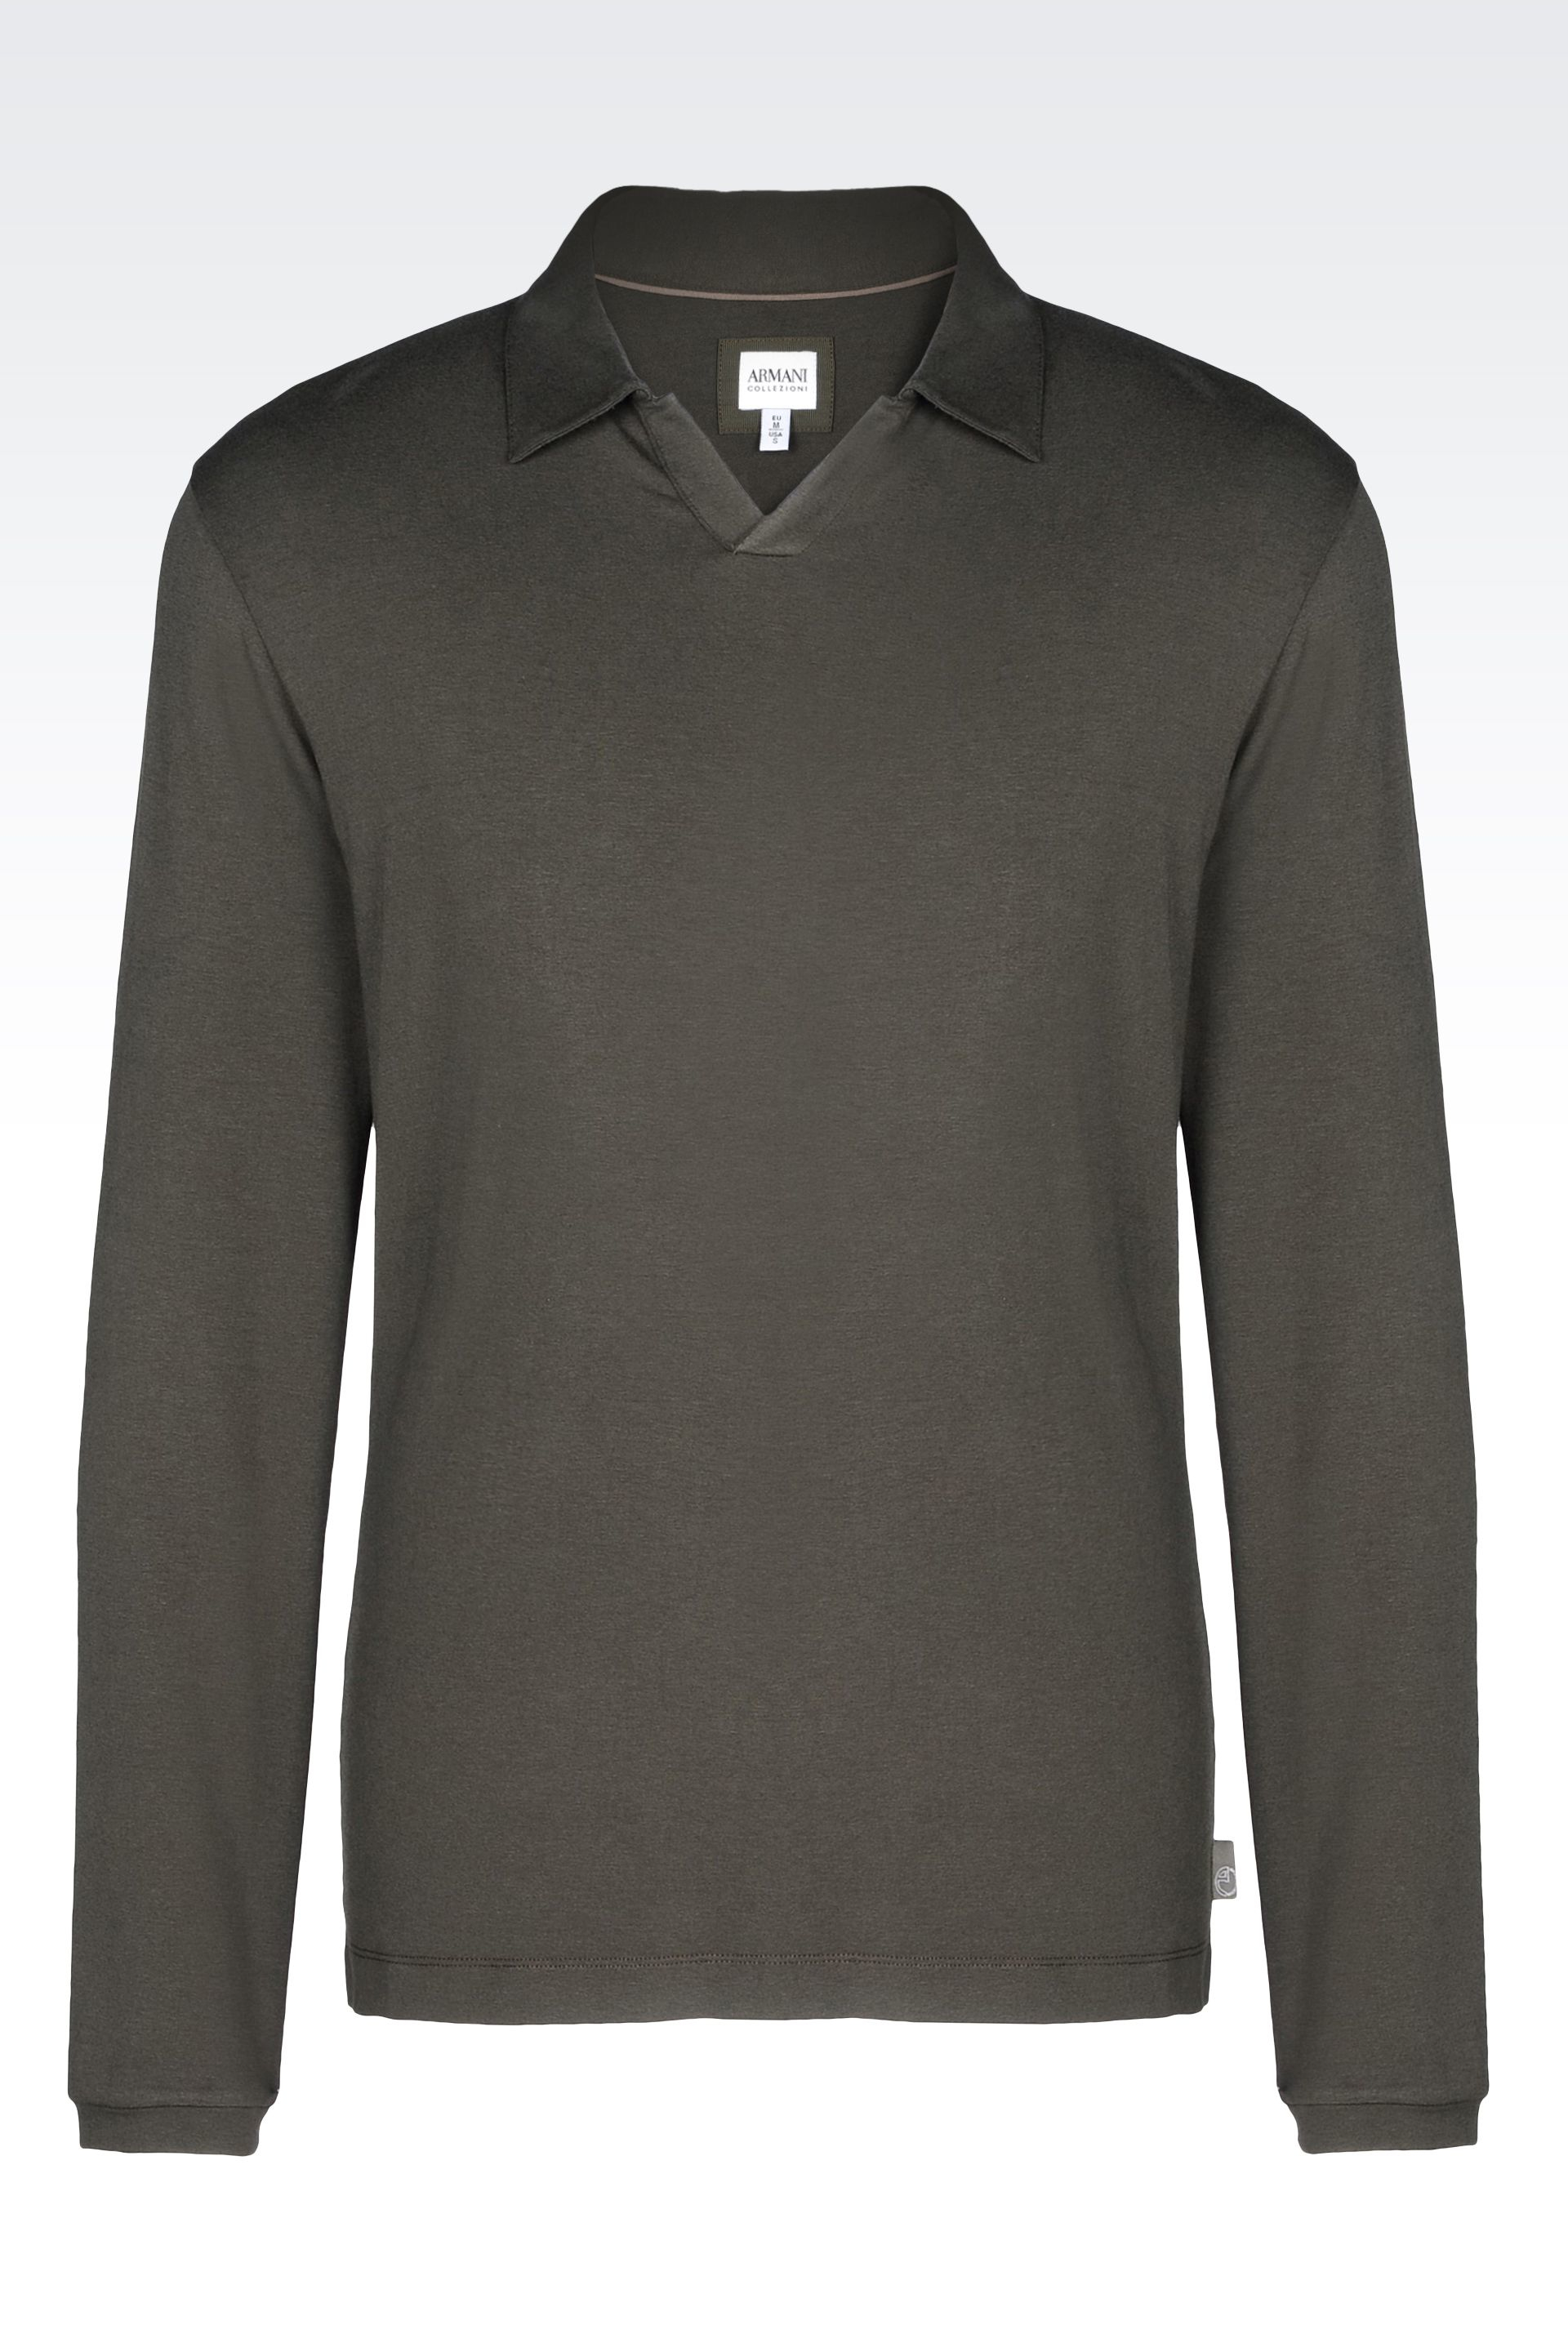 Armani polo shirt in stretch viscose jersey in green for for Dark green mens polo shirt